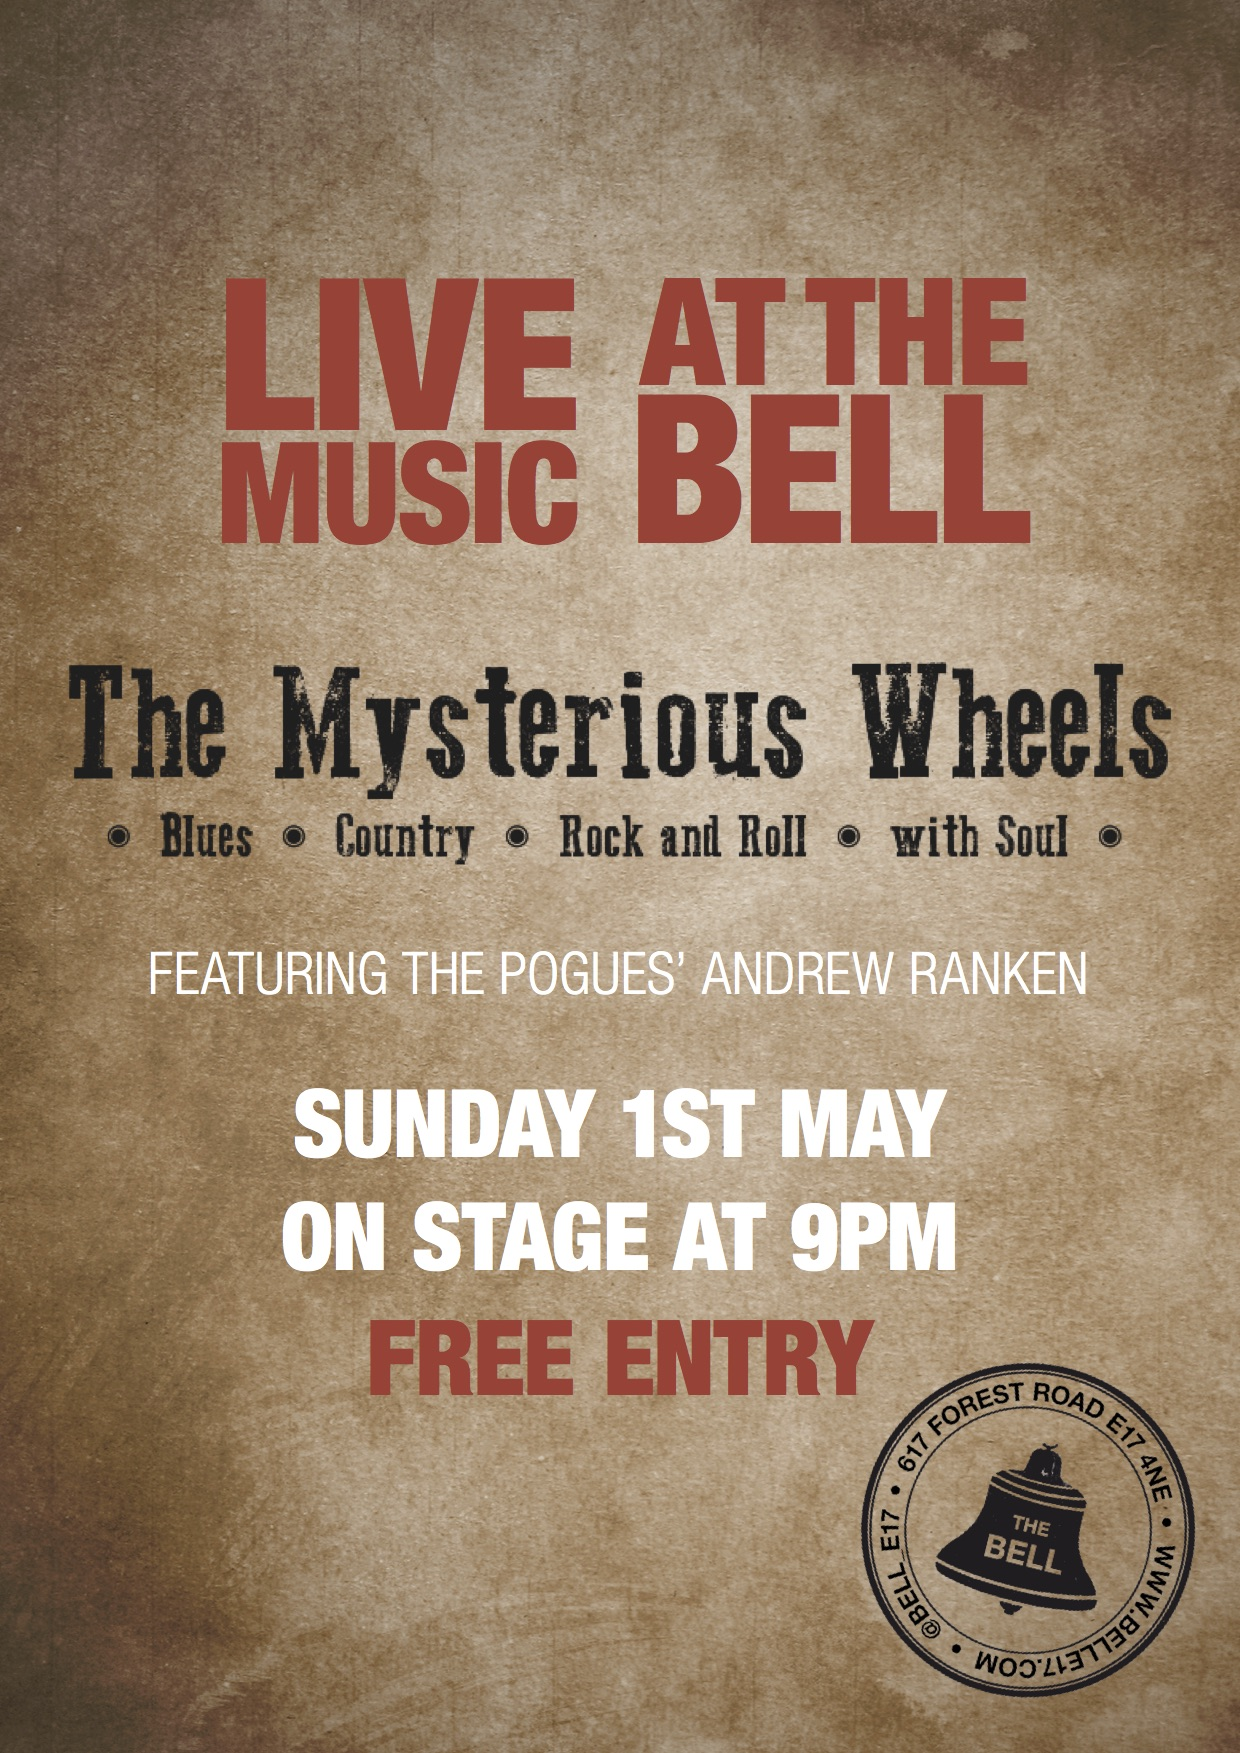 Mysterious Wheels play at The Bell